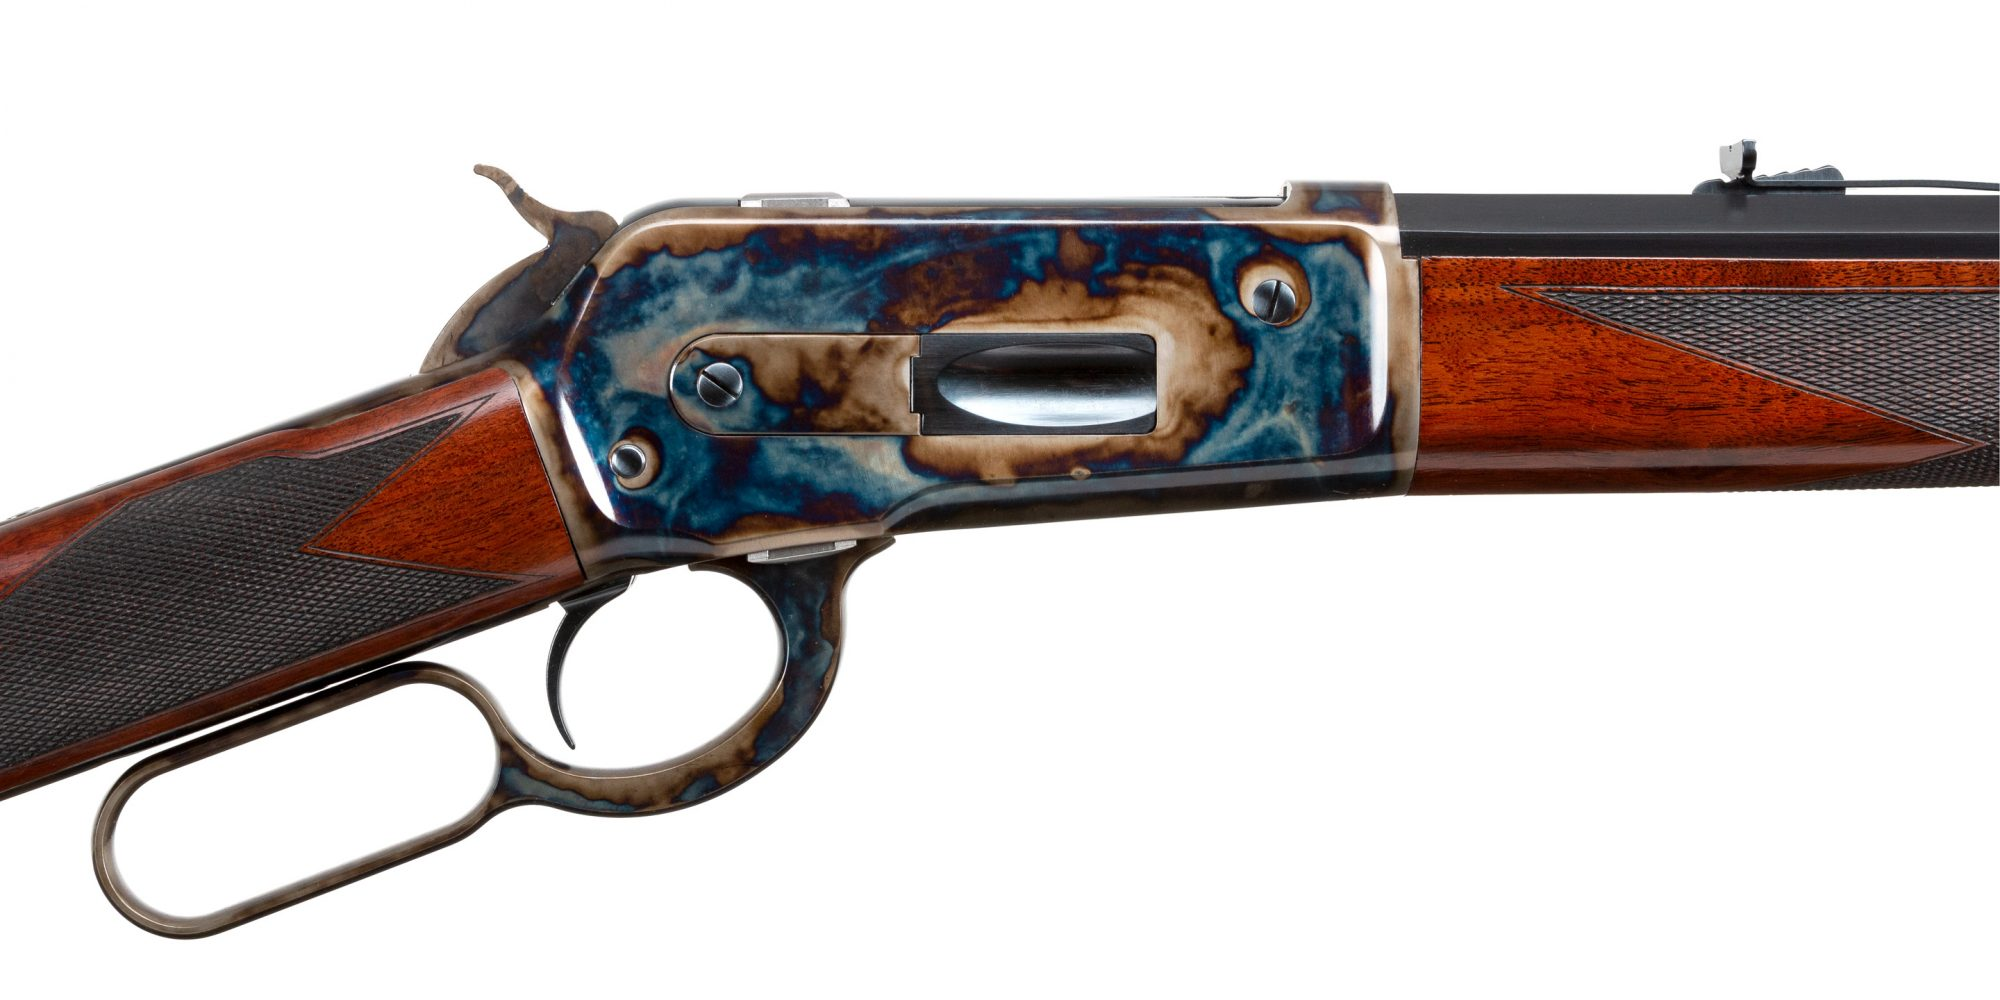 Photo of a Turnbull Model 1886 rifle chambered in .45-70 Govt., and featuring all period-correct finishes including color case hardening